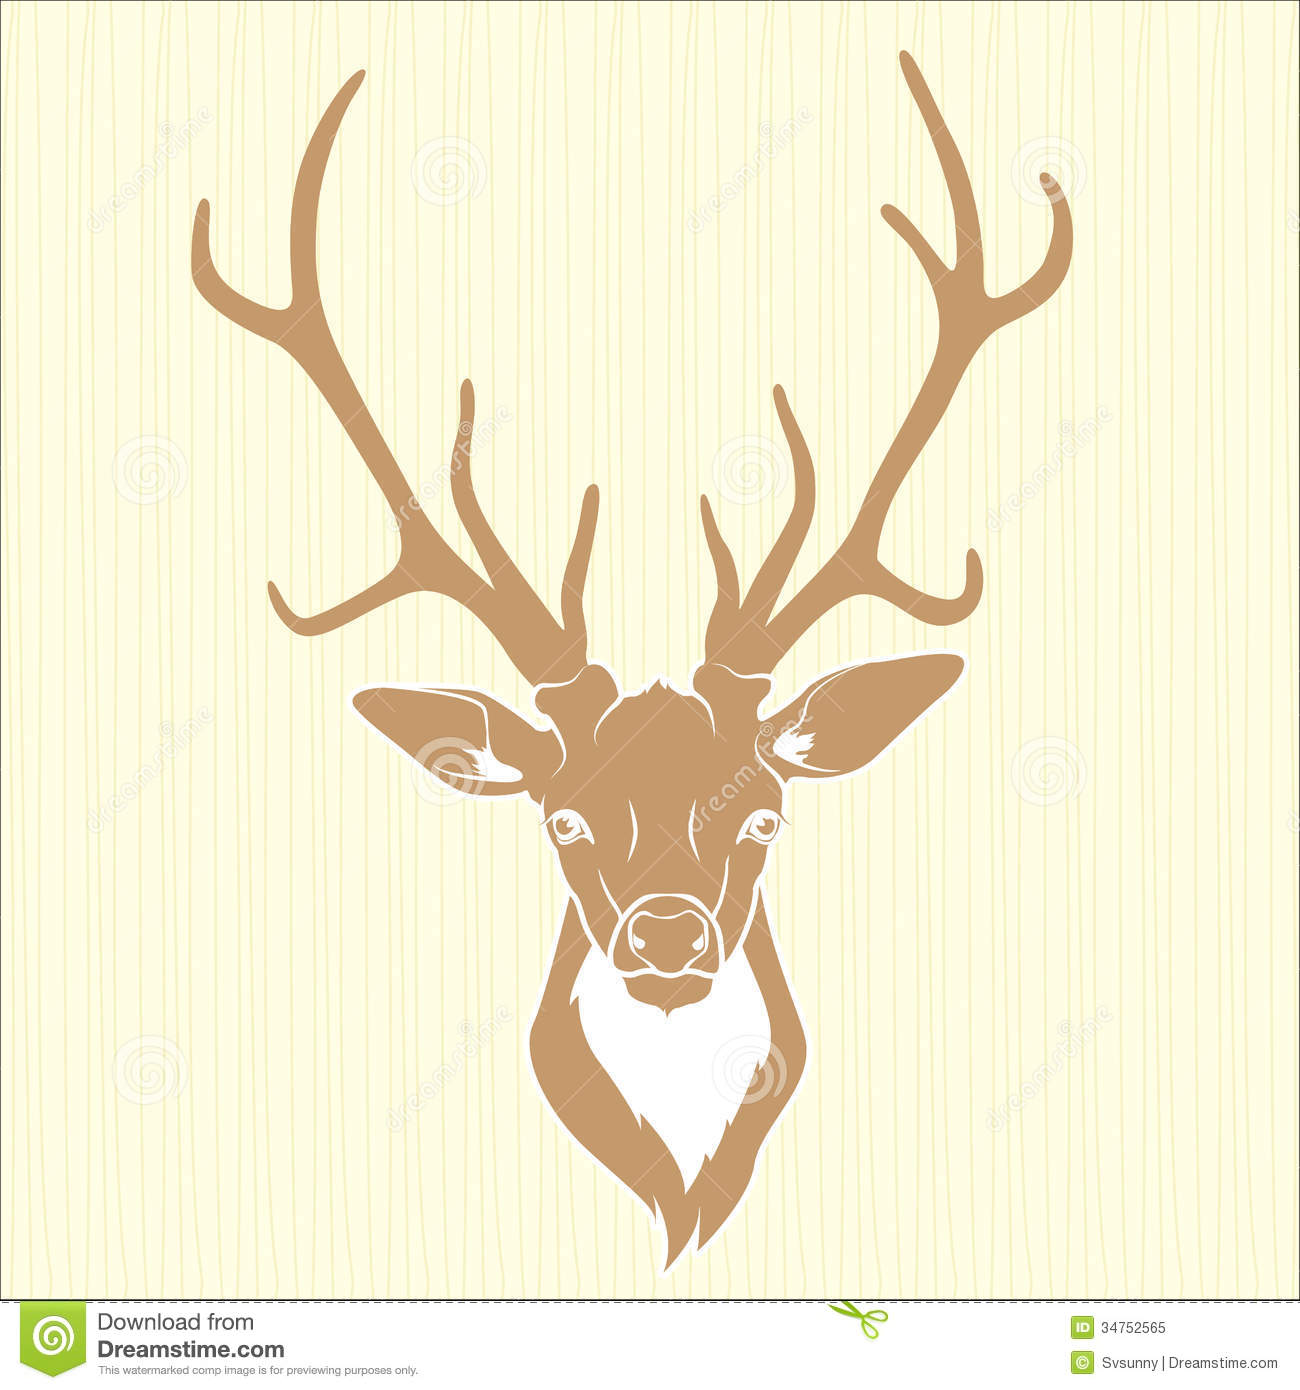 Deer Head Isolated Royalty Free Stock Photo - Image: 34752565